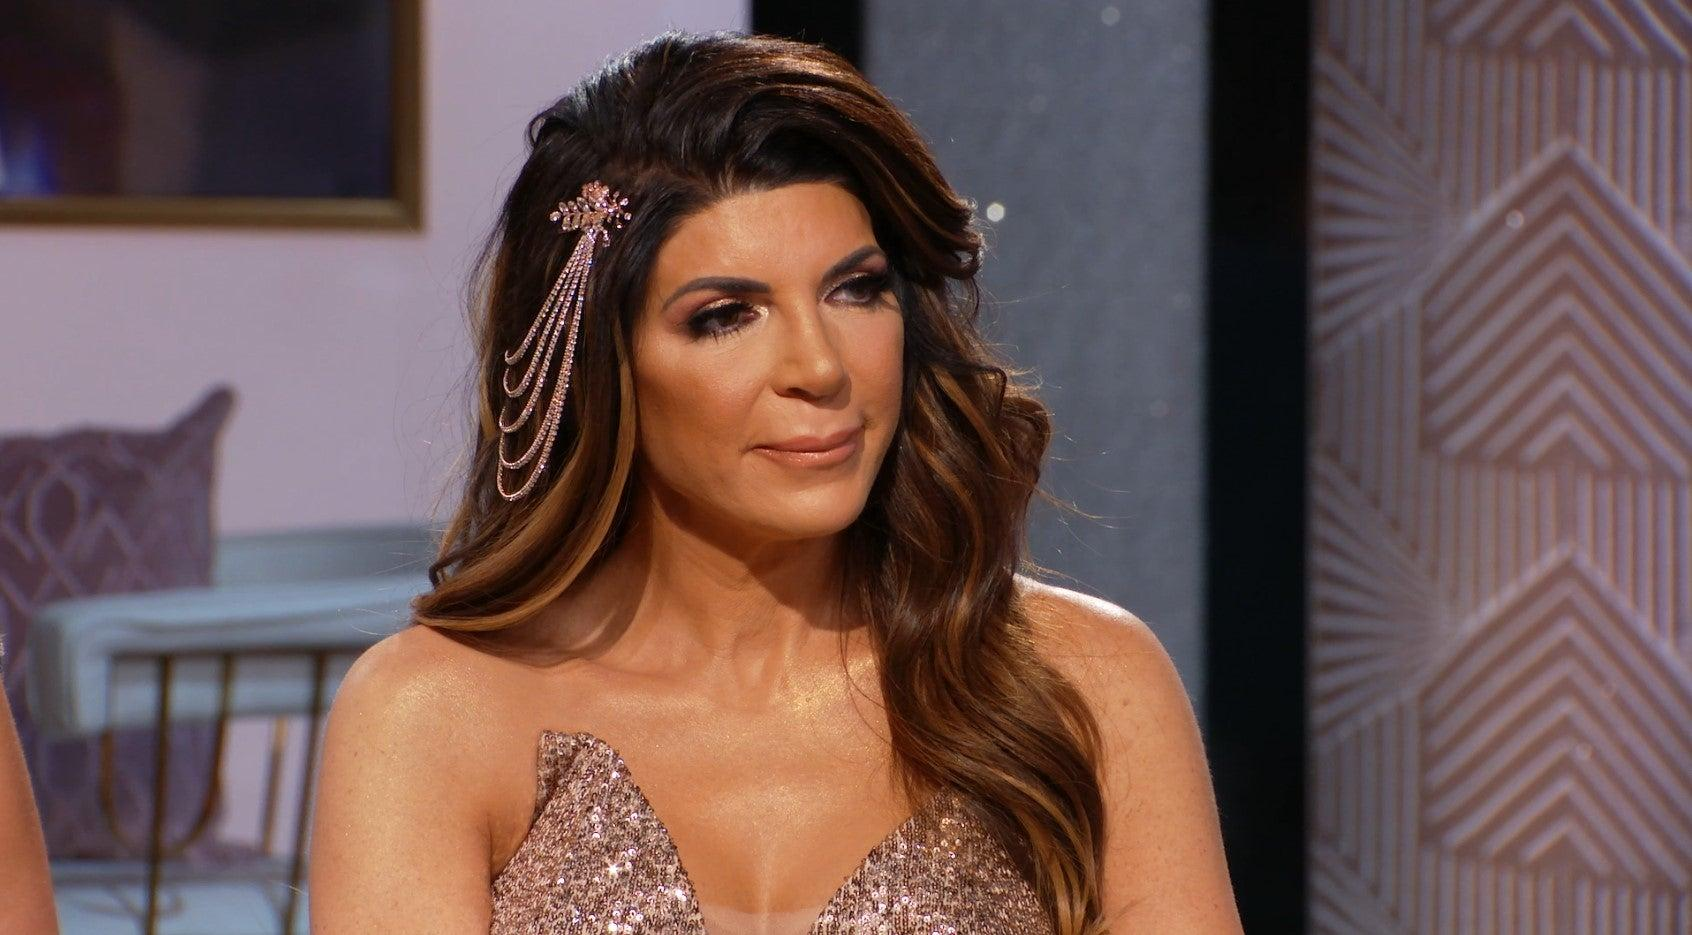 Teresa Giudice Confirms She's Been Taking Things Slow With Her New Boyfriend!